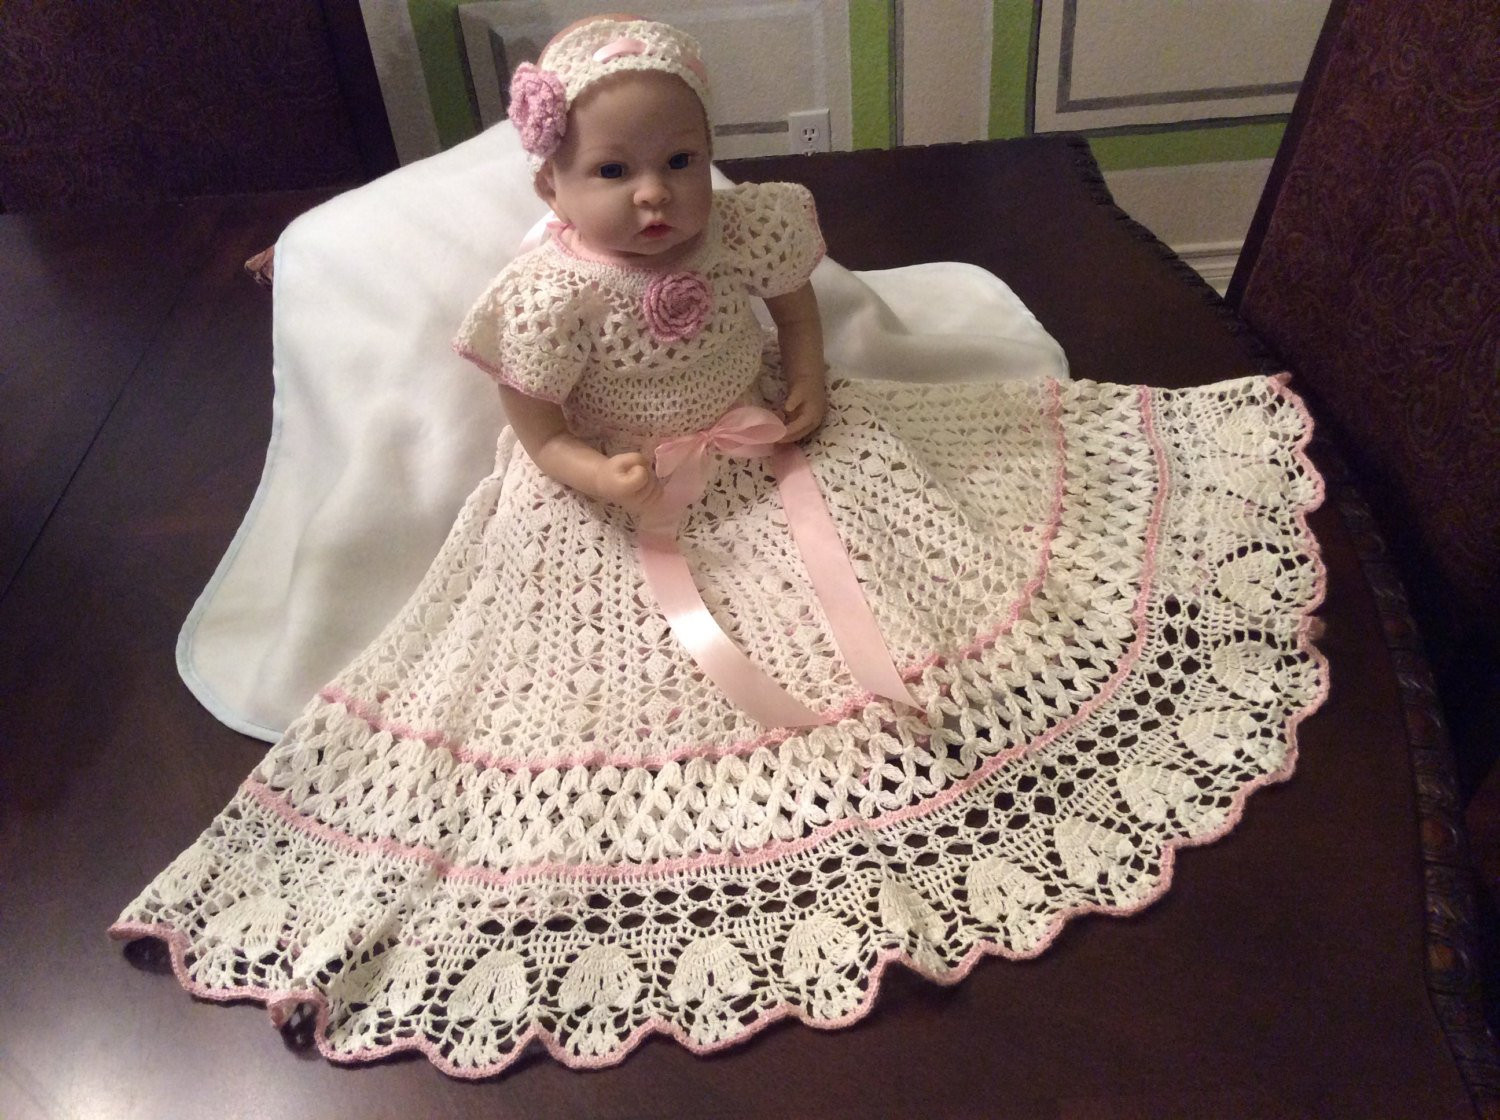 Baby Christening Gowns Inspirational Crochet Yoked Interchangeable Flower Christening Gown Pattern Of Incredible 40 Models Baby Christening Gowns